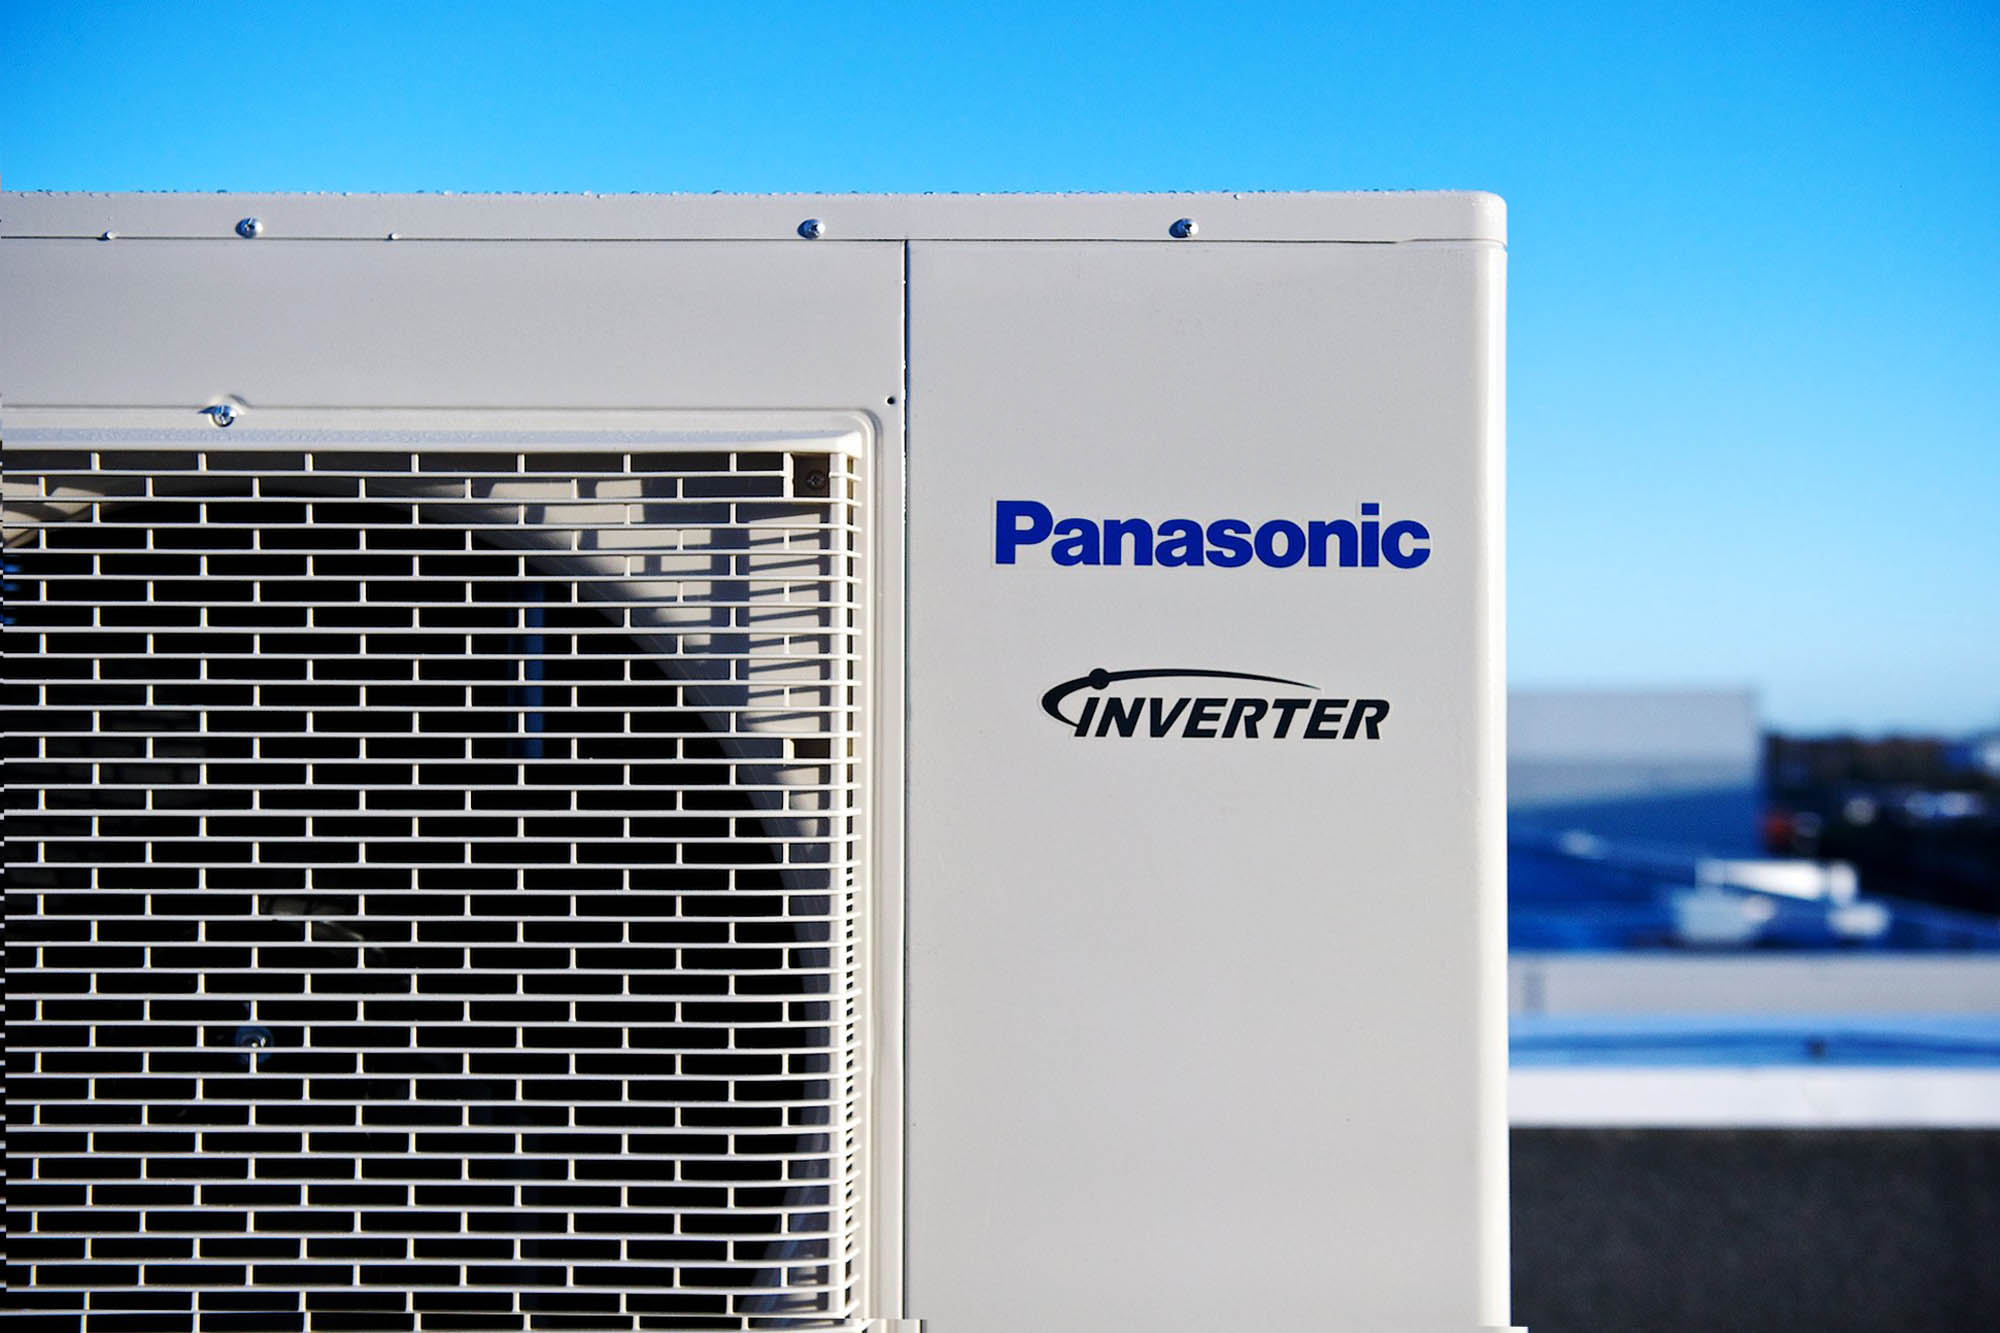 Alpha_Mechanical_Services_Panasonic_Inverter.jpg